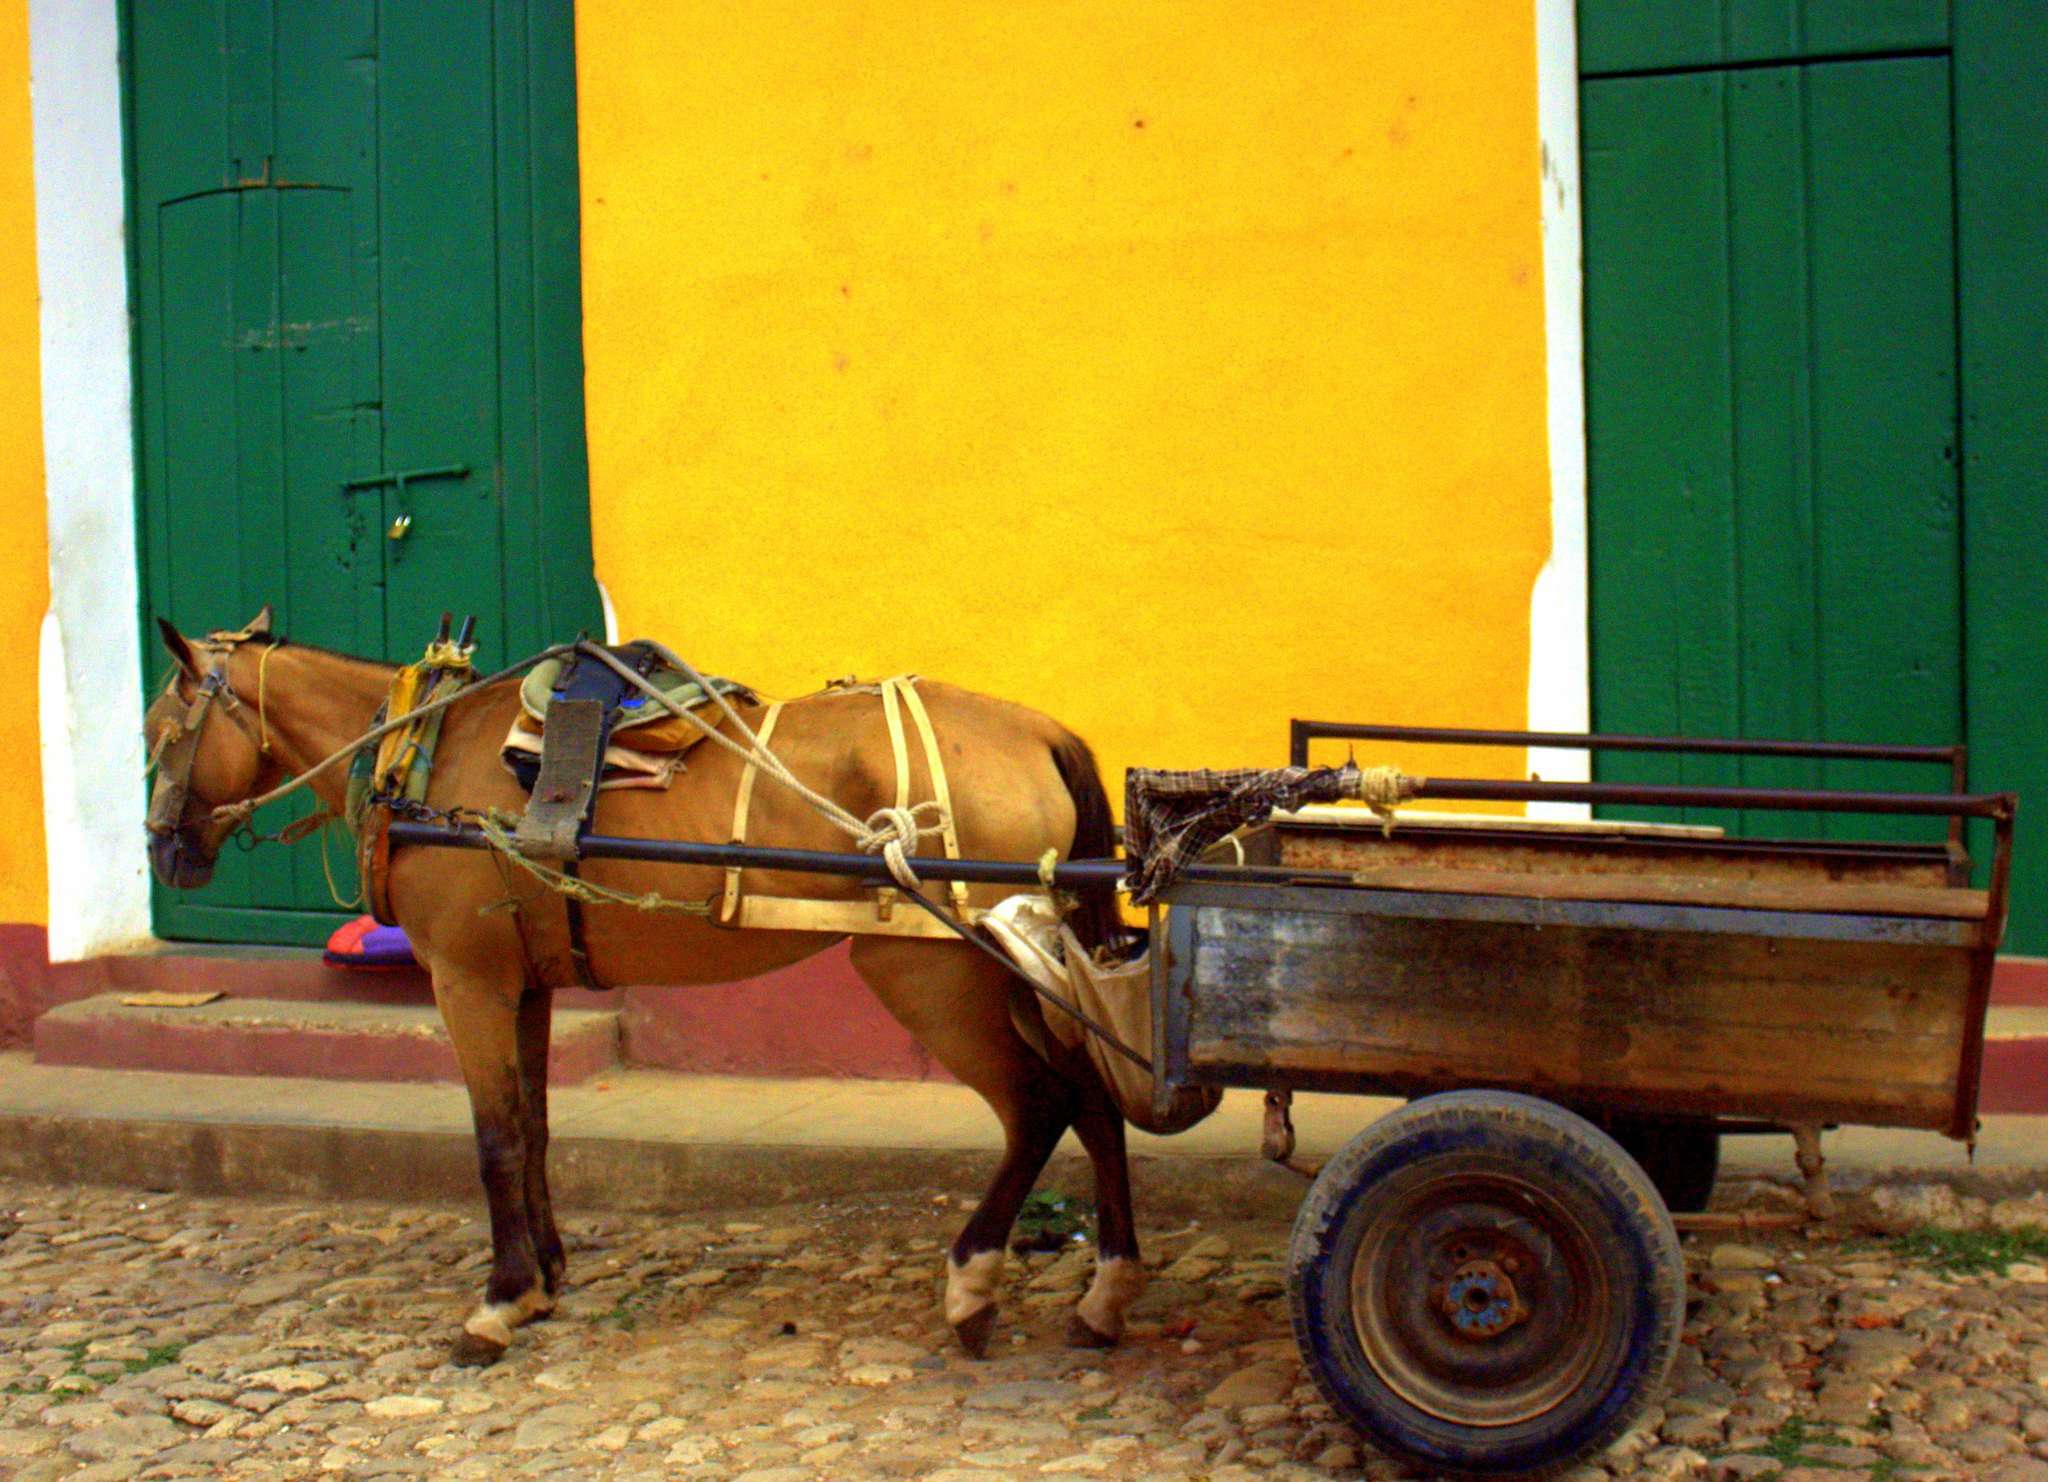 Trinidad Cuba is very touristy